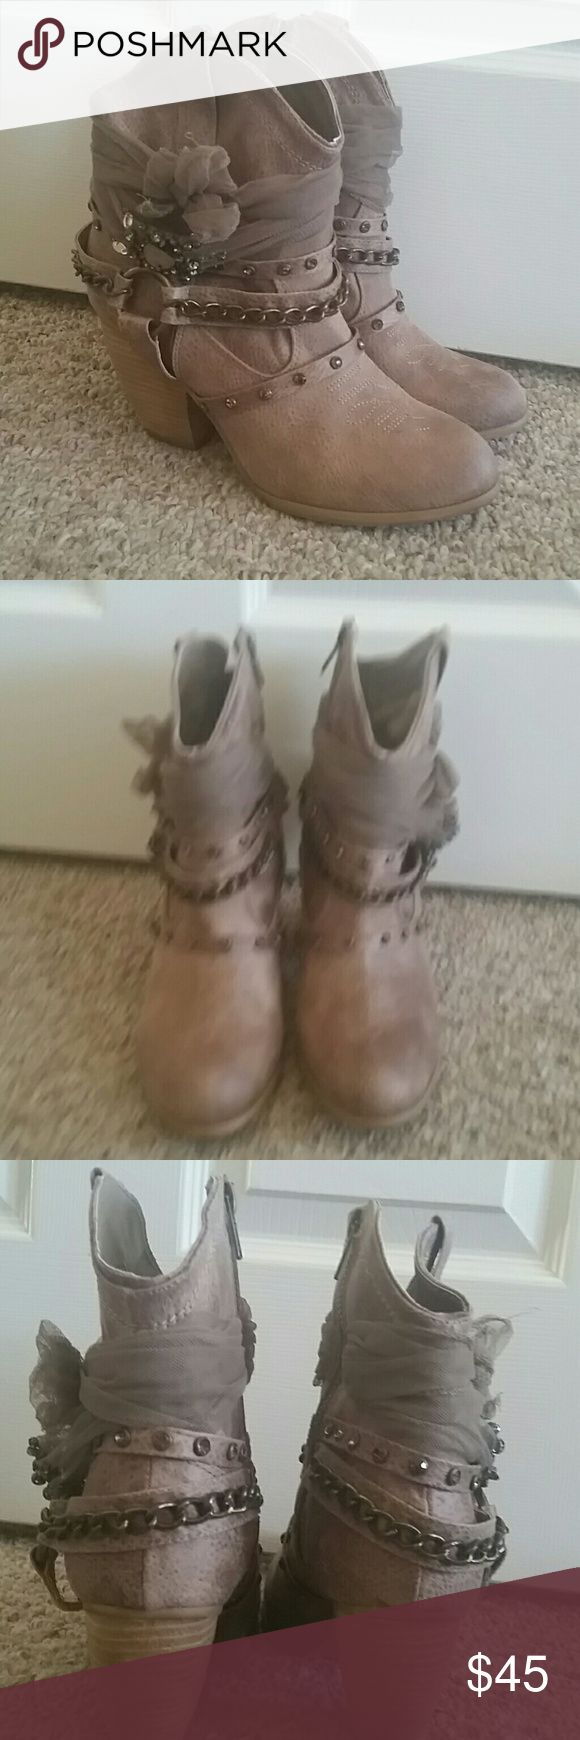 Not rated bling bow ankle boot size 9.5 new Not rated light brown rhinestone  chains and bows western ankle boot size 9.5 new wore 1x for less then 2 hours Not Rated Shoes Ankle Boots & Booties